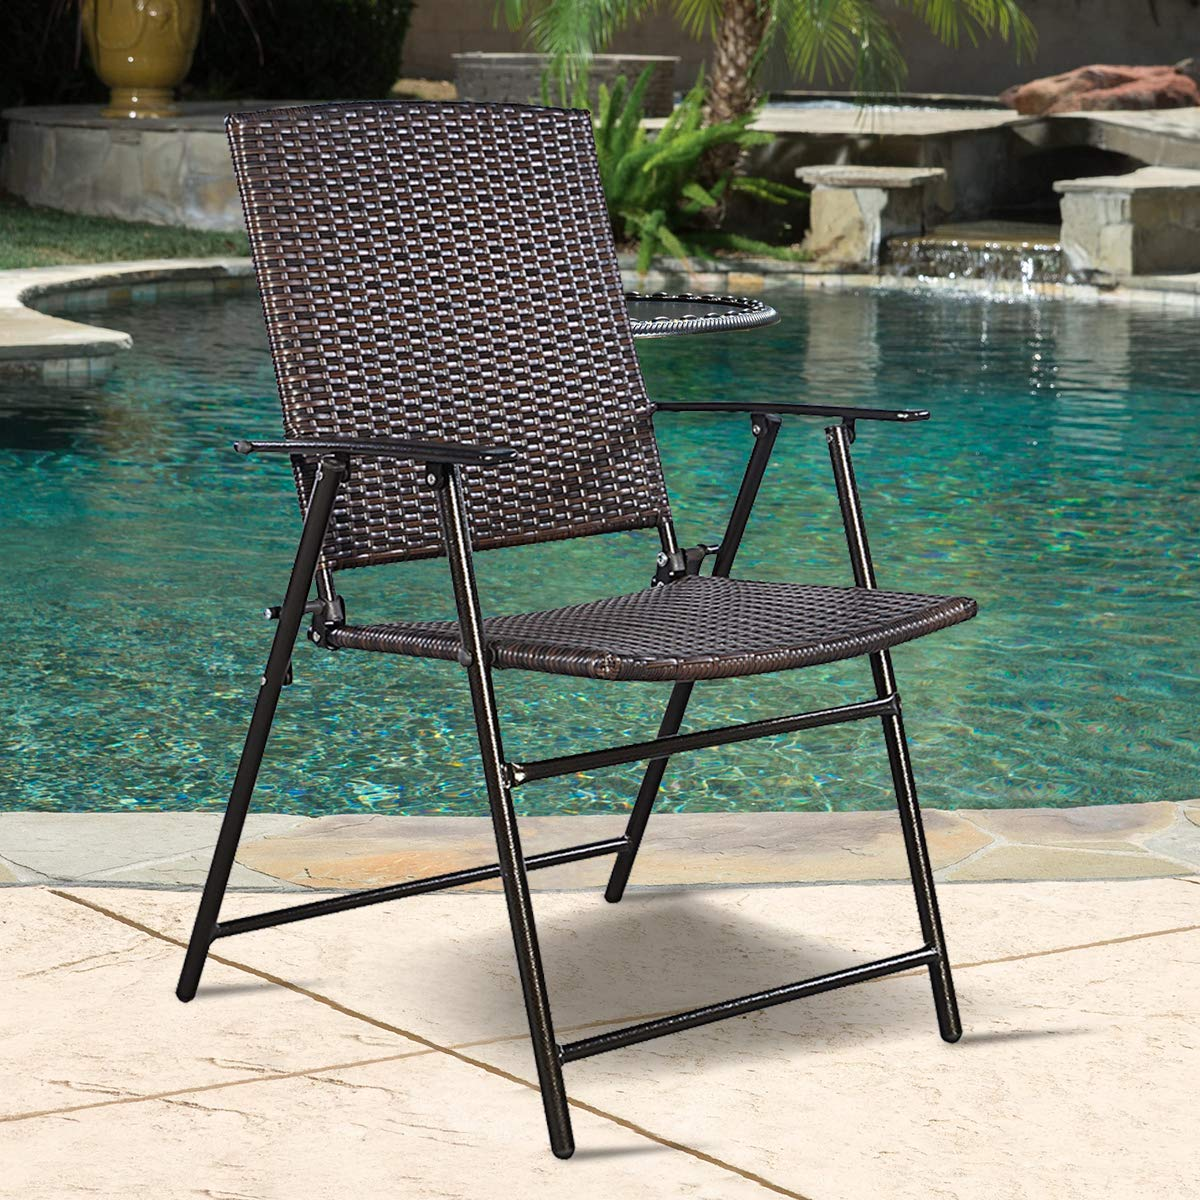 Tangkula 4 PCS Folding Patio Chair Set Outdoor Pool Lawn Portable Wicker Chair with Armrest & Footrest Durable Rattan Steel Frame Commercial Foldable Stackable Party Wedding Chair Set (24X23X37) by Tangkula (Image #5)